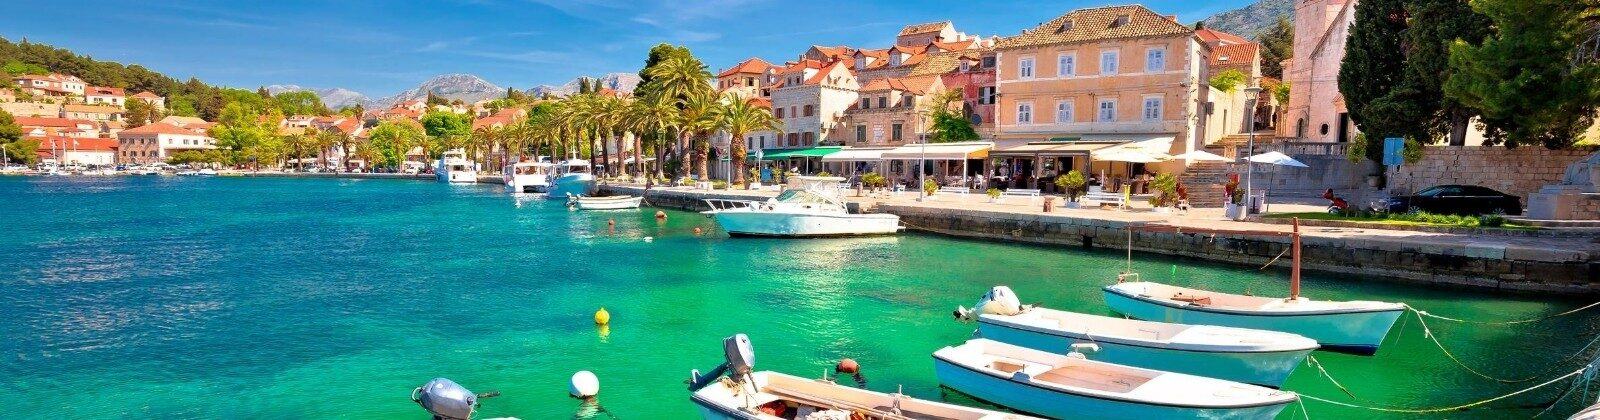 waterfront in croatia with sea and boats